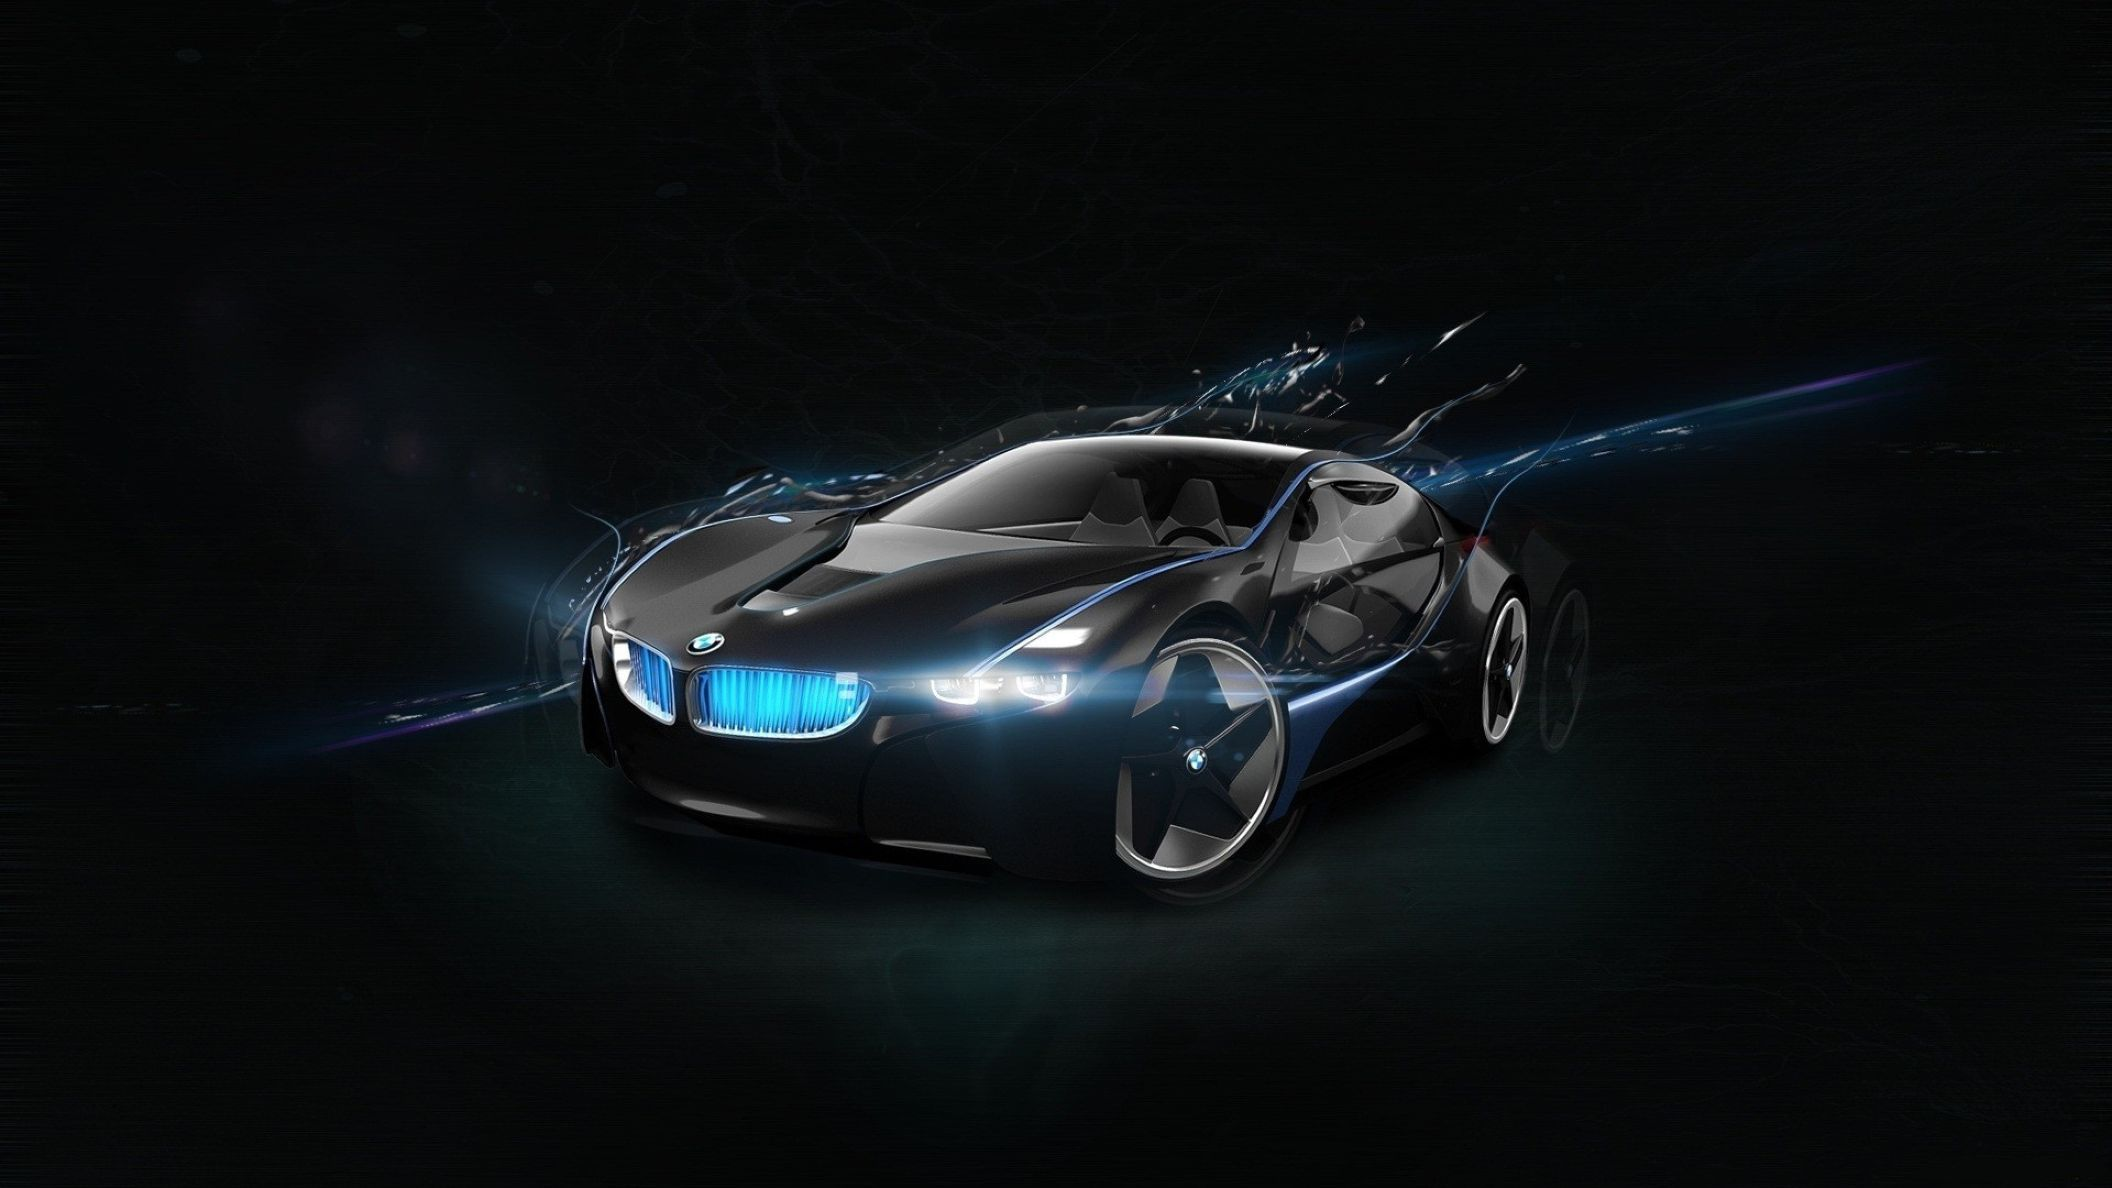 bmw vision super car hd wallpaper: desktop hd wallpaper - download